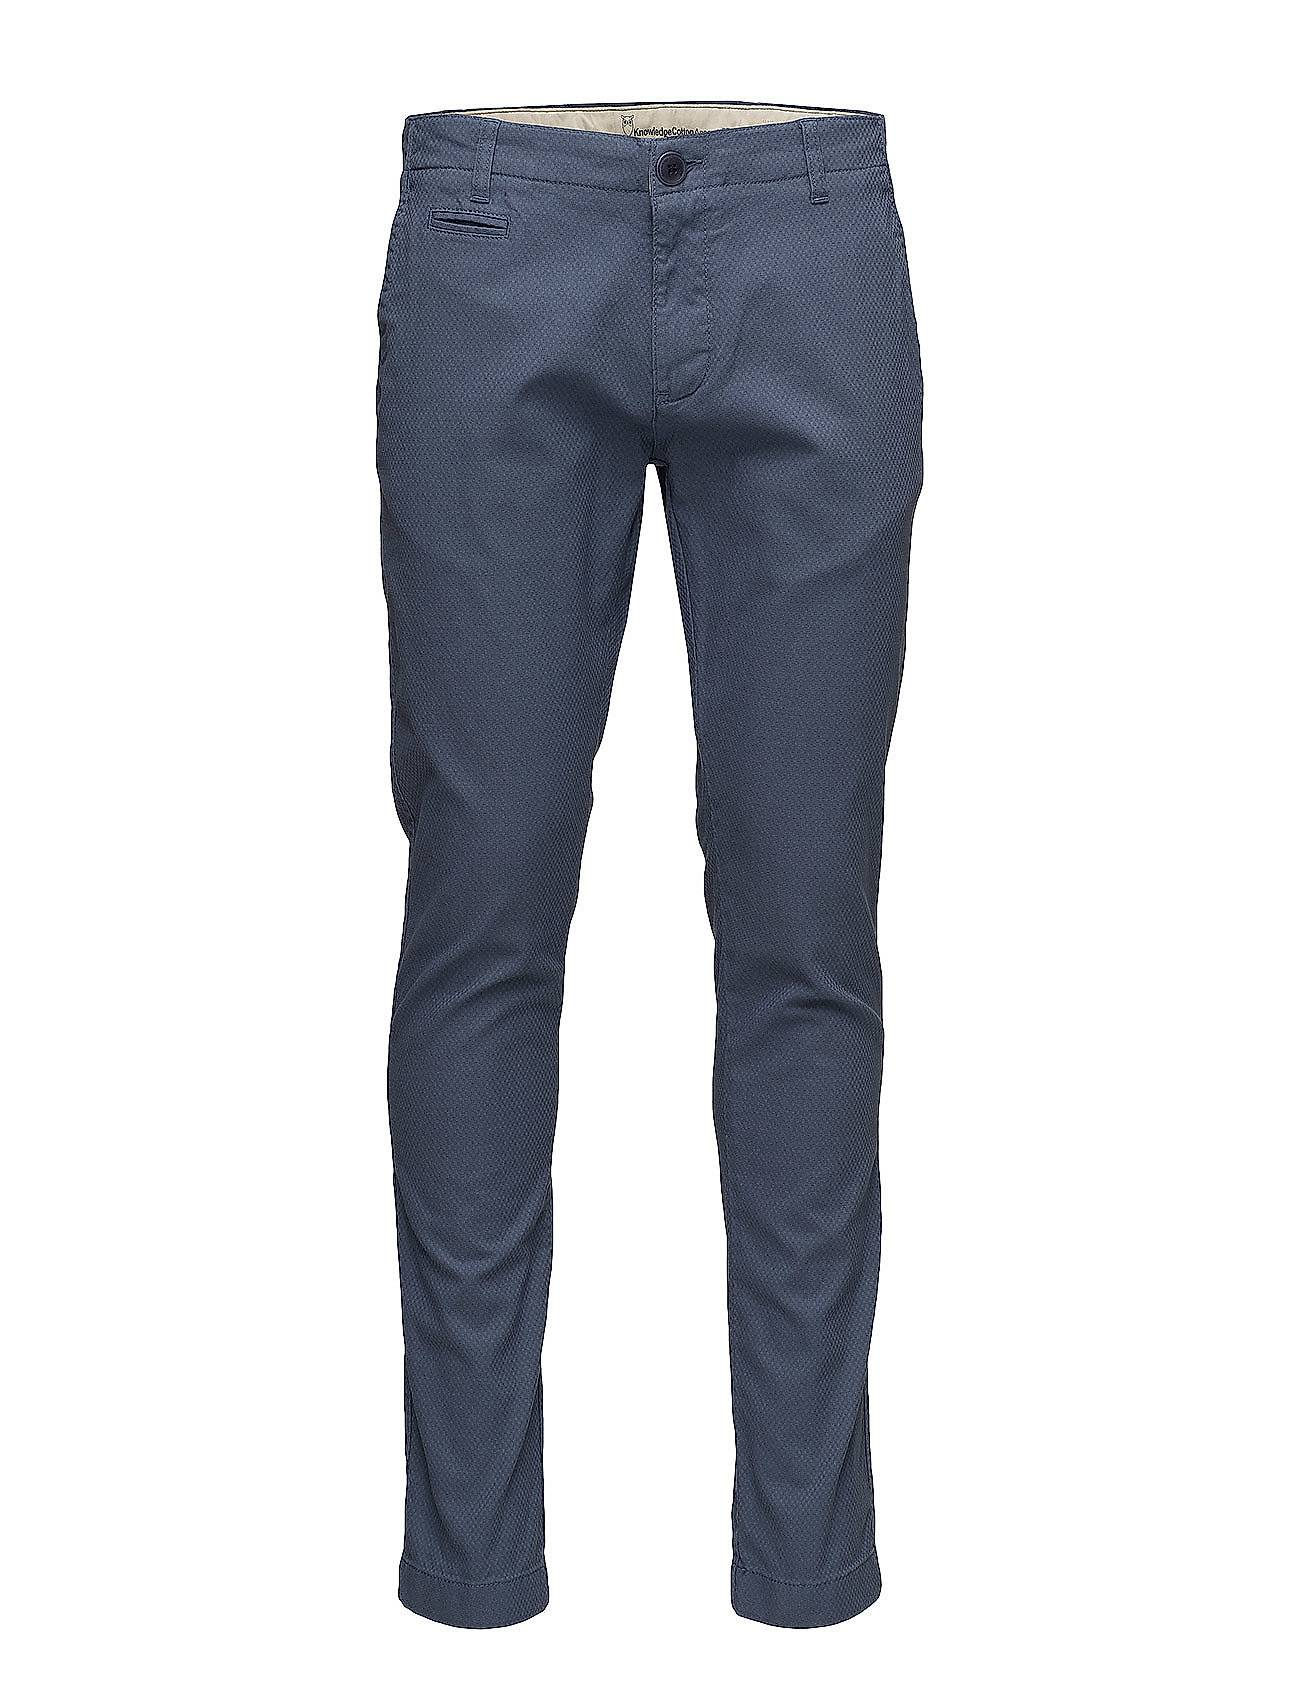 Knowledge Cotton Apparel Fabric Dyed Chino Pant  - Gots